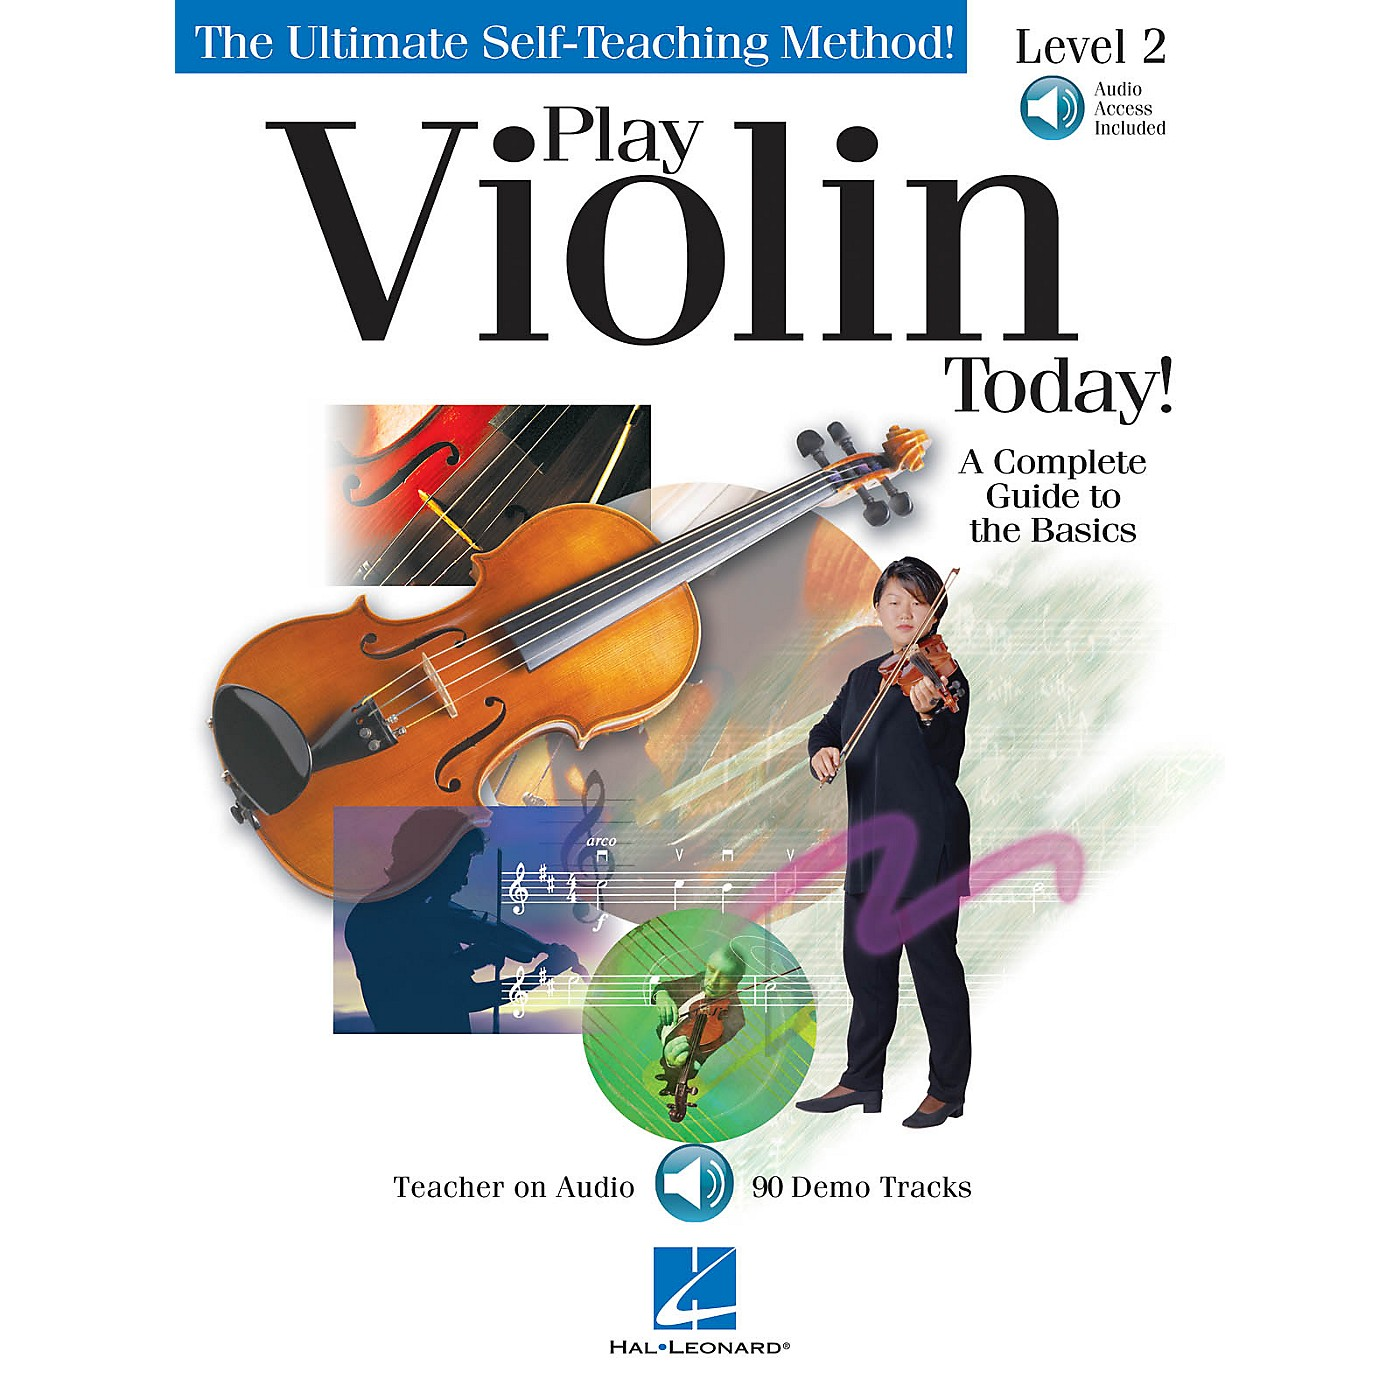 Hal Leonard Play Violin Today! - Level 2 Play Today Instructional Series Series Softcover with CD by Various Authors thumbnail